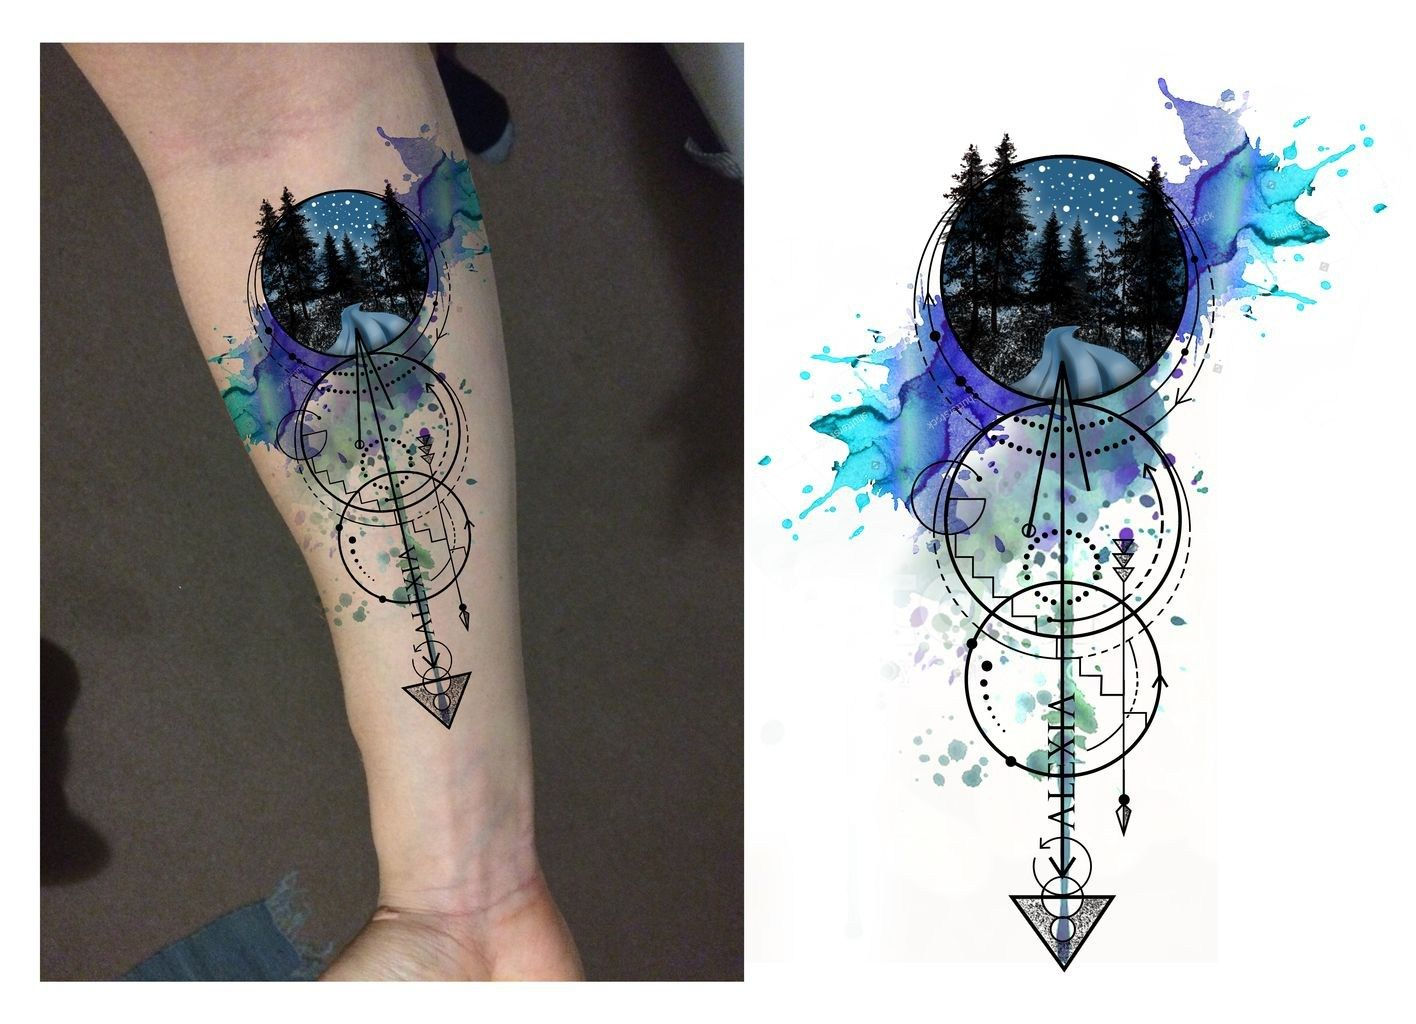 Cool Wolf Tattoo Design Ideas Suitable For You Who Loves Spirit Animal 15 Aksahin Jewelry Forearm Tattoo Design Tattoo Designs Geometric Tattoo